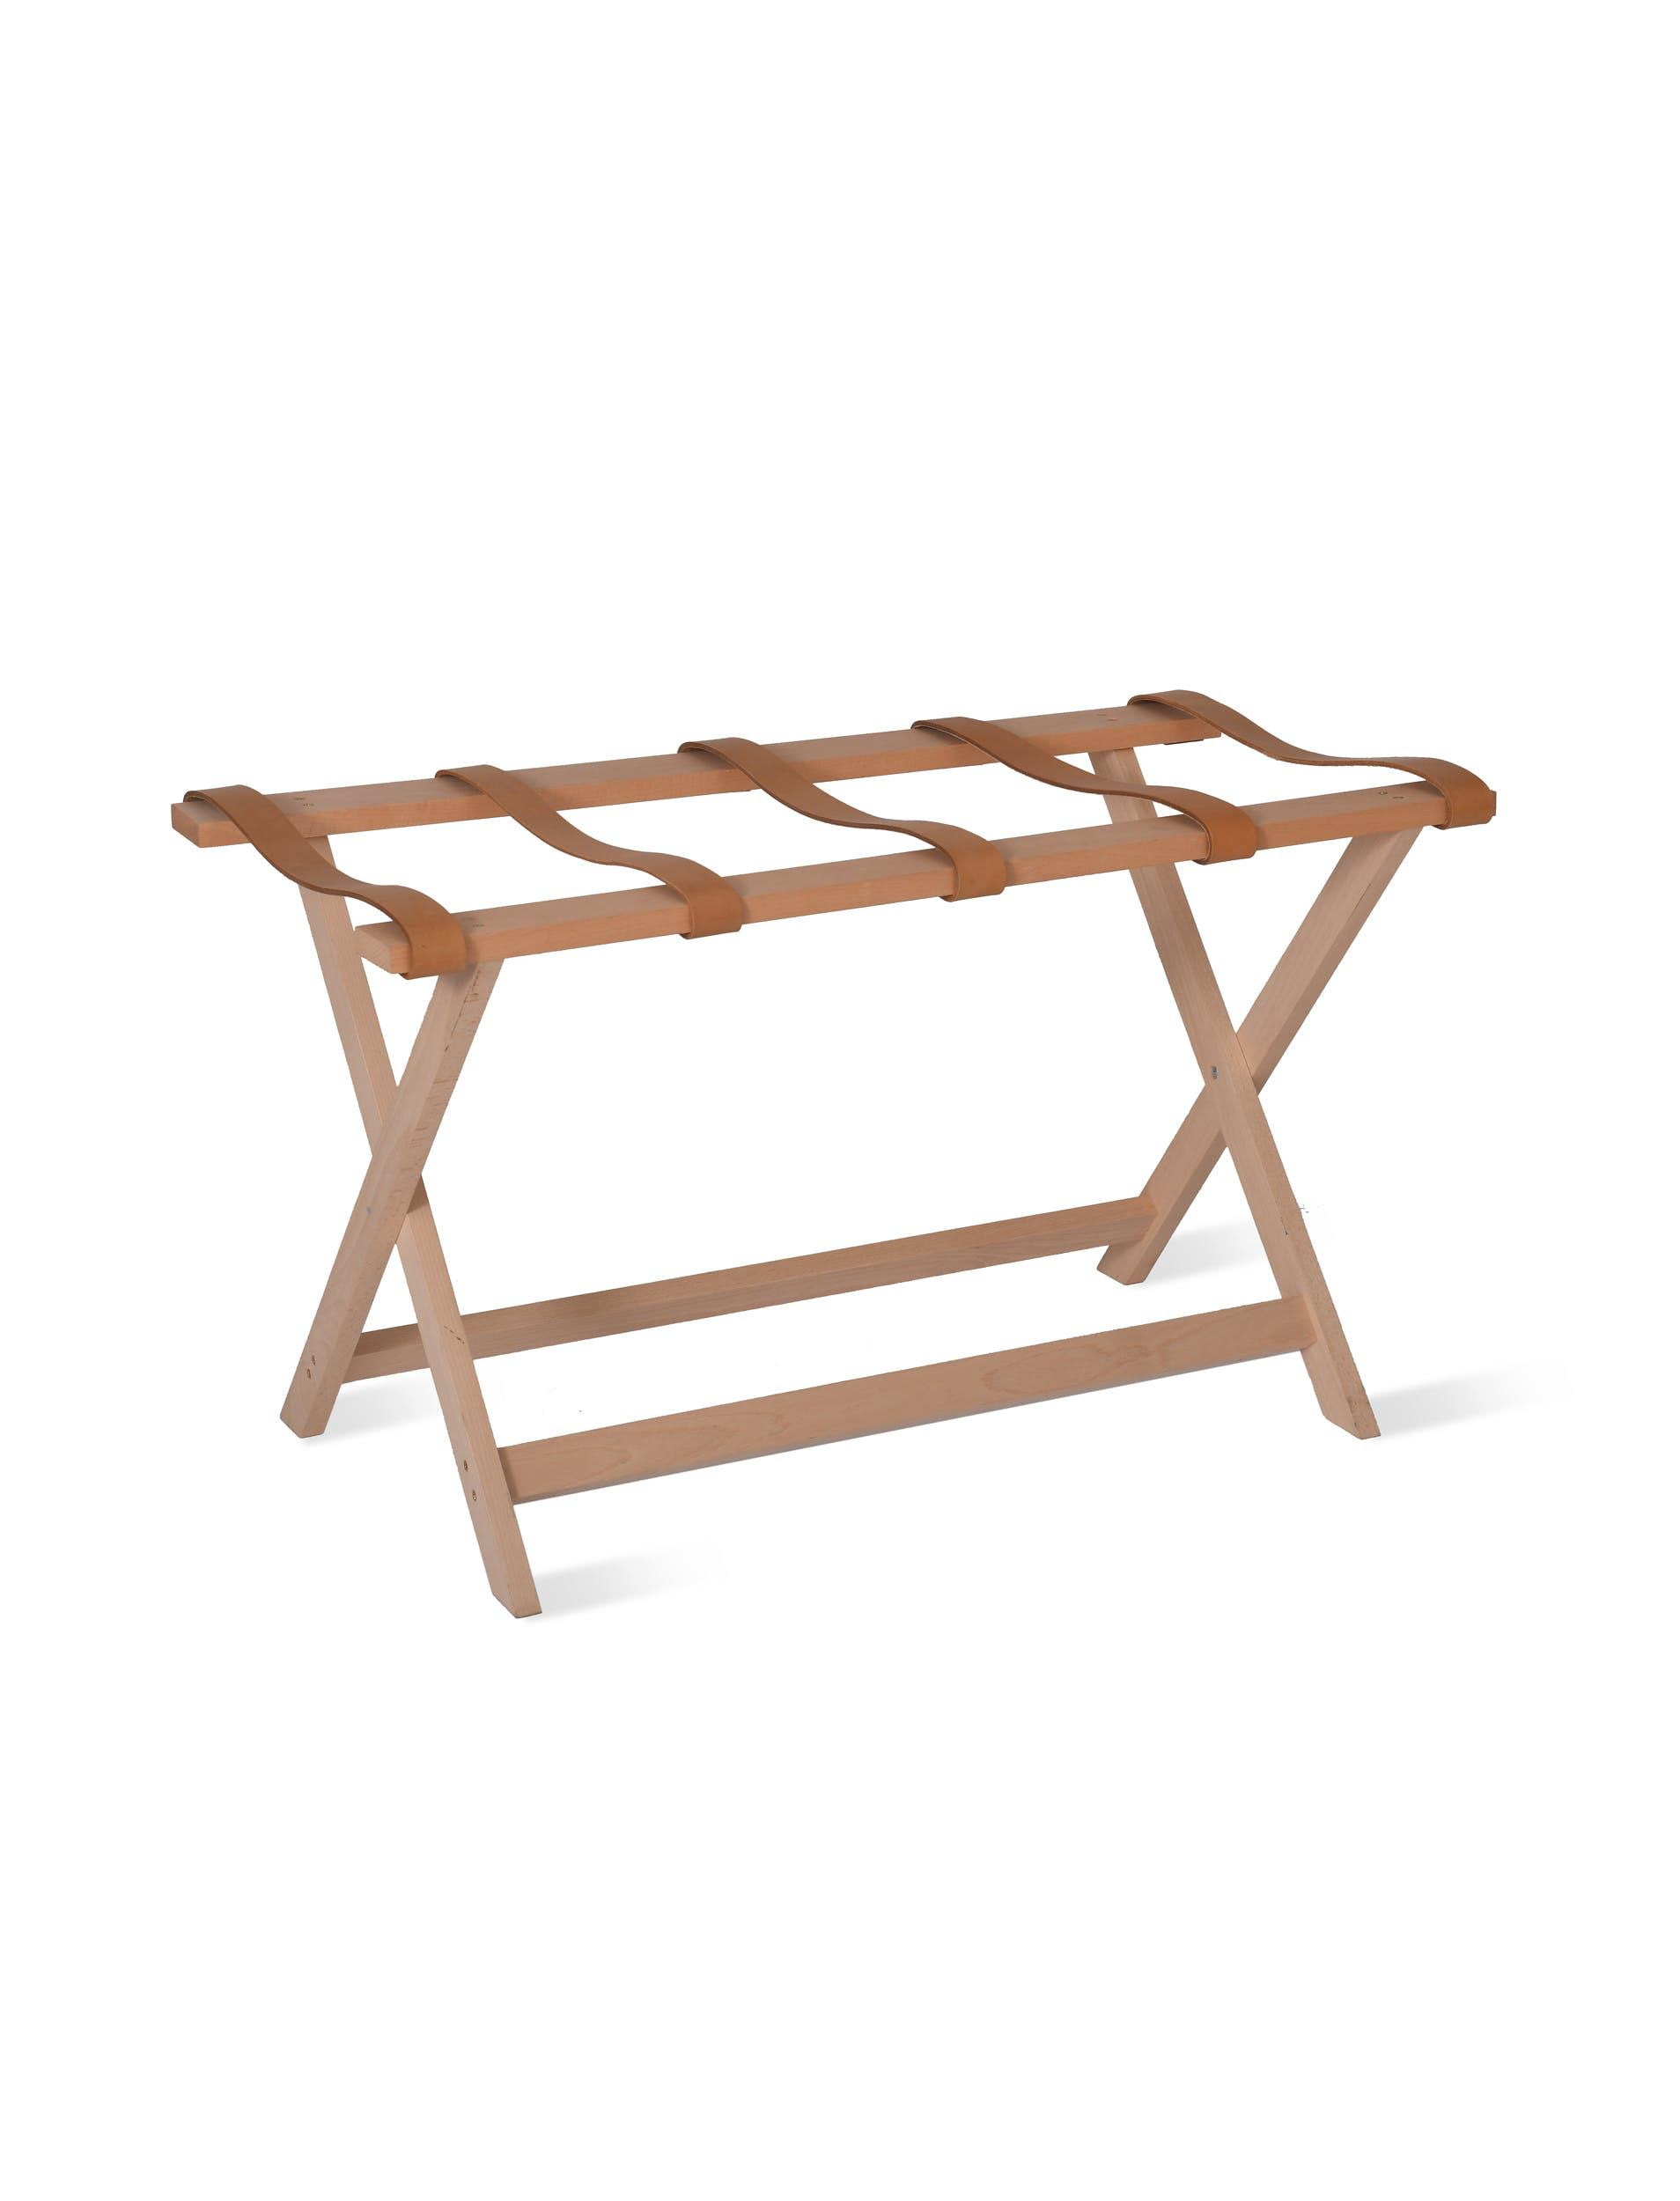 Wood and Leather Kelston Folding Luggage Bench | Garden Trading